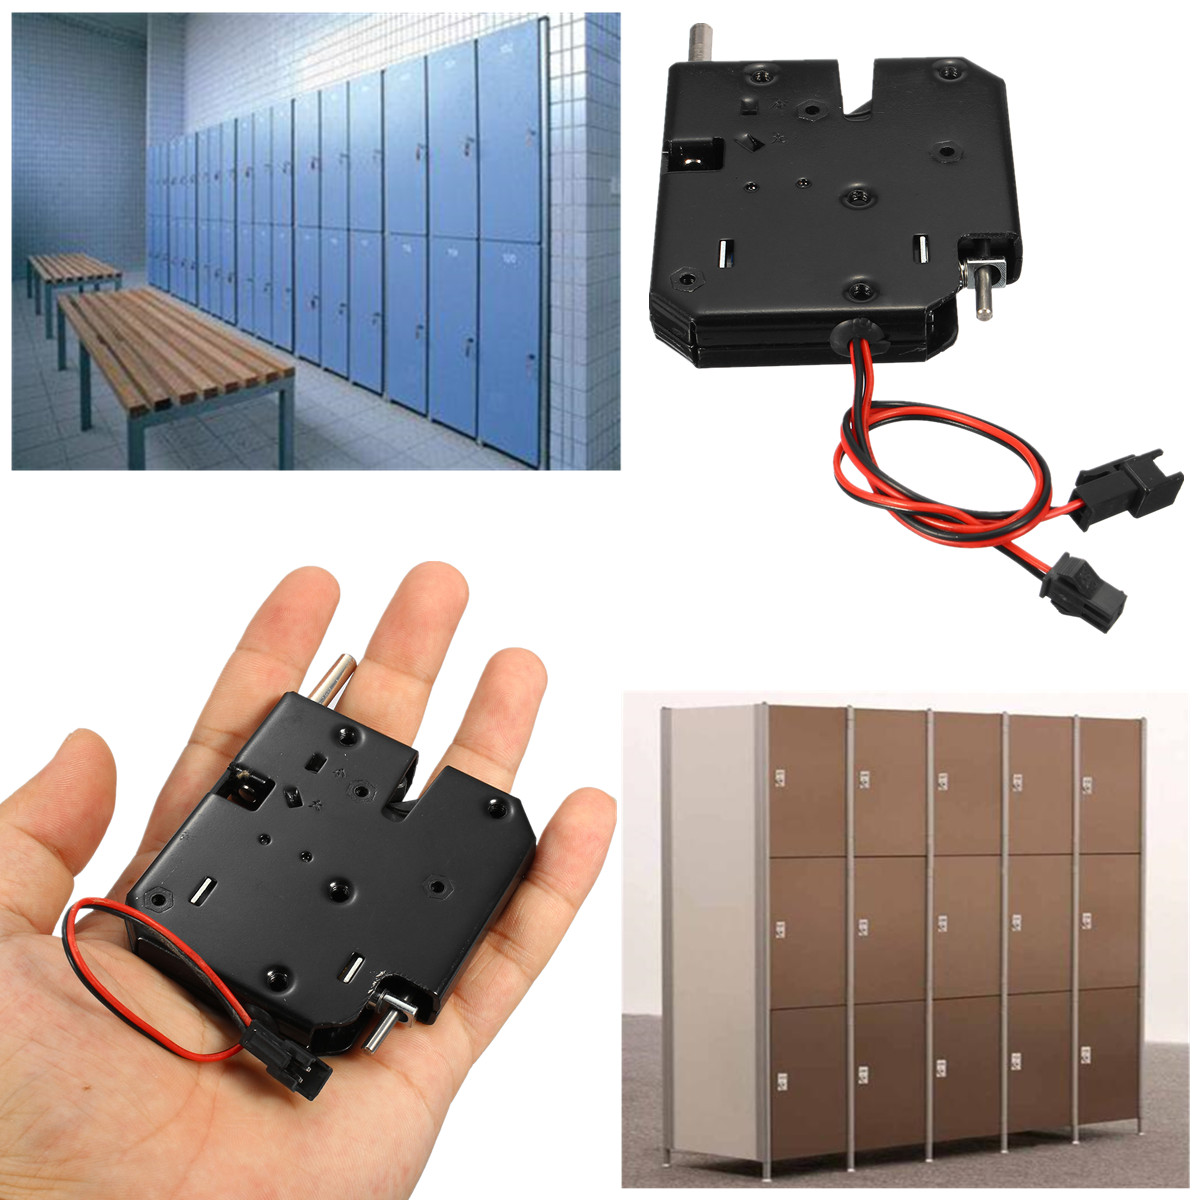 DC 12V/24V Electric Magnetic Lock Door Access Control 150KG/330lbs Holding Force Magnetic Door Lock